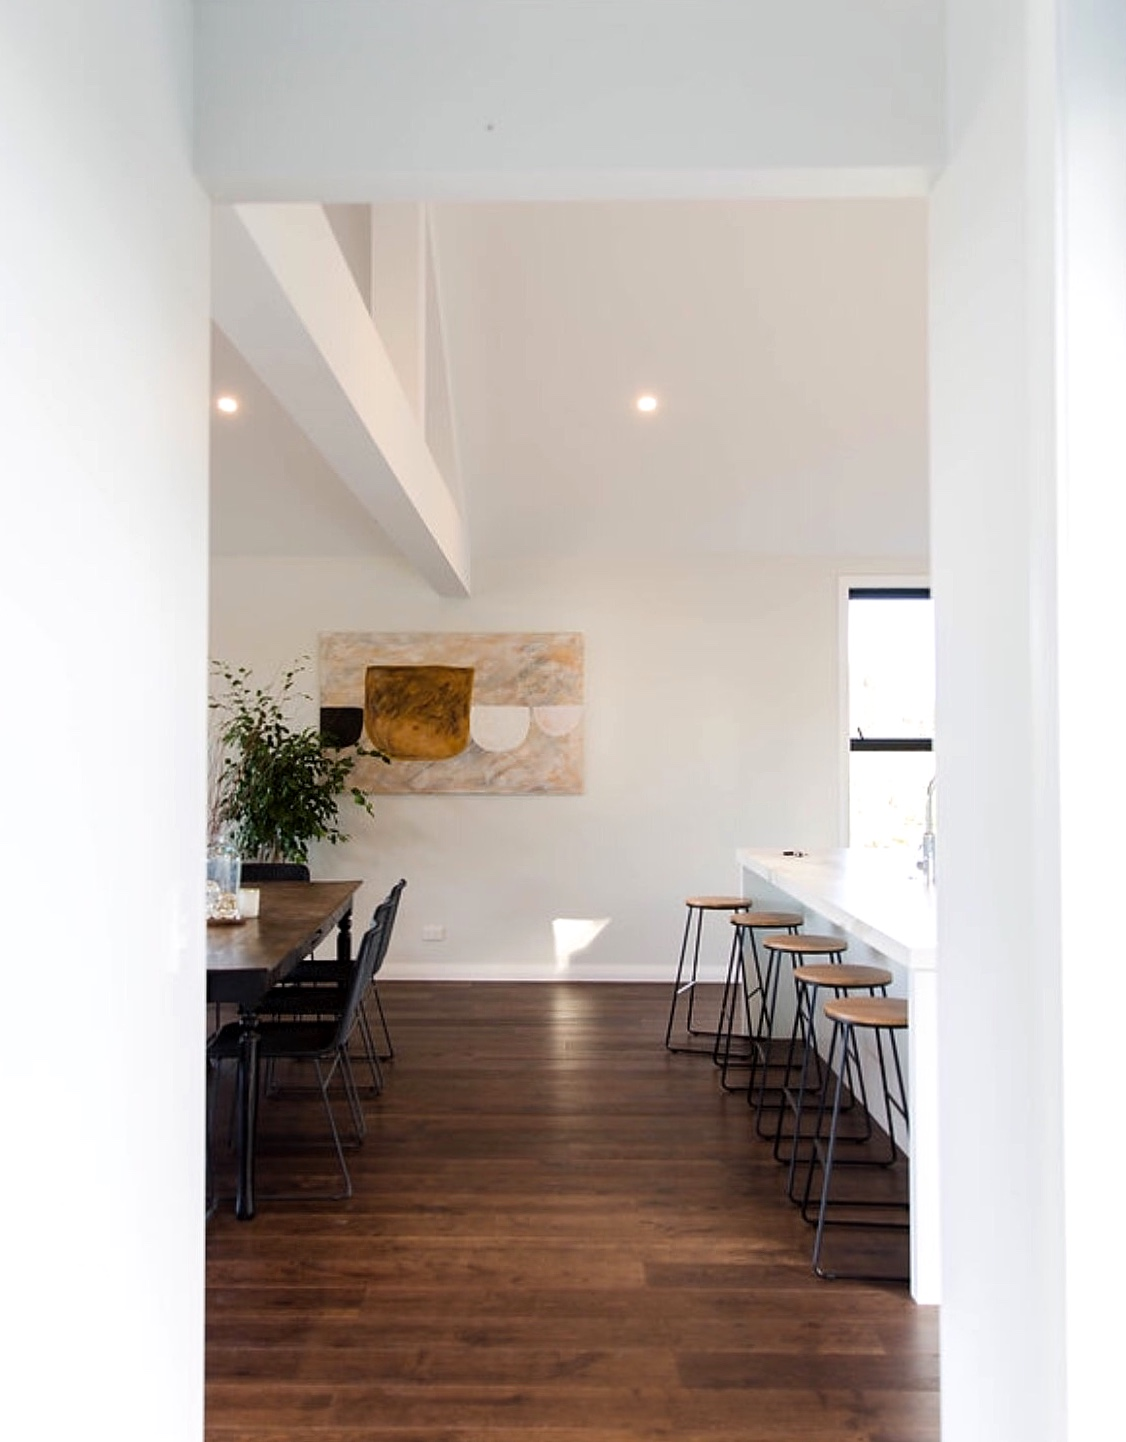 new build dining room and kitchen breakfast bar with wood floors, modern wall art